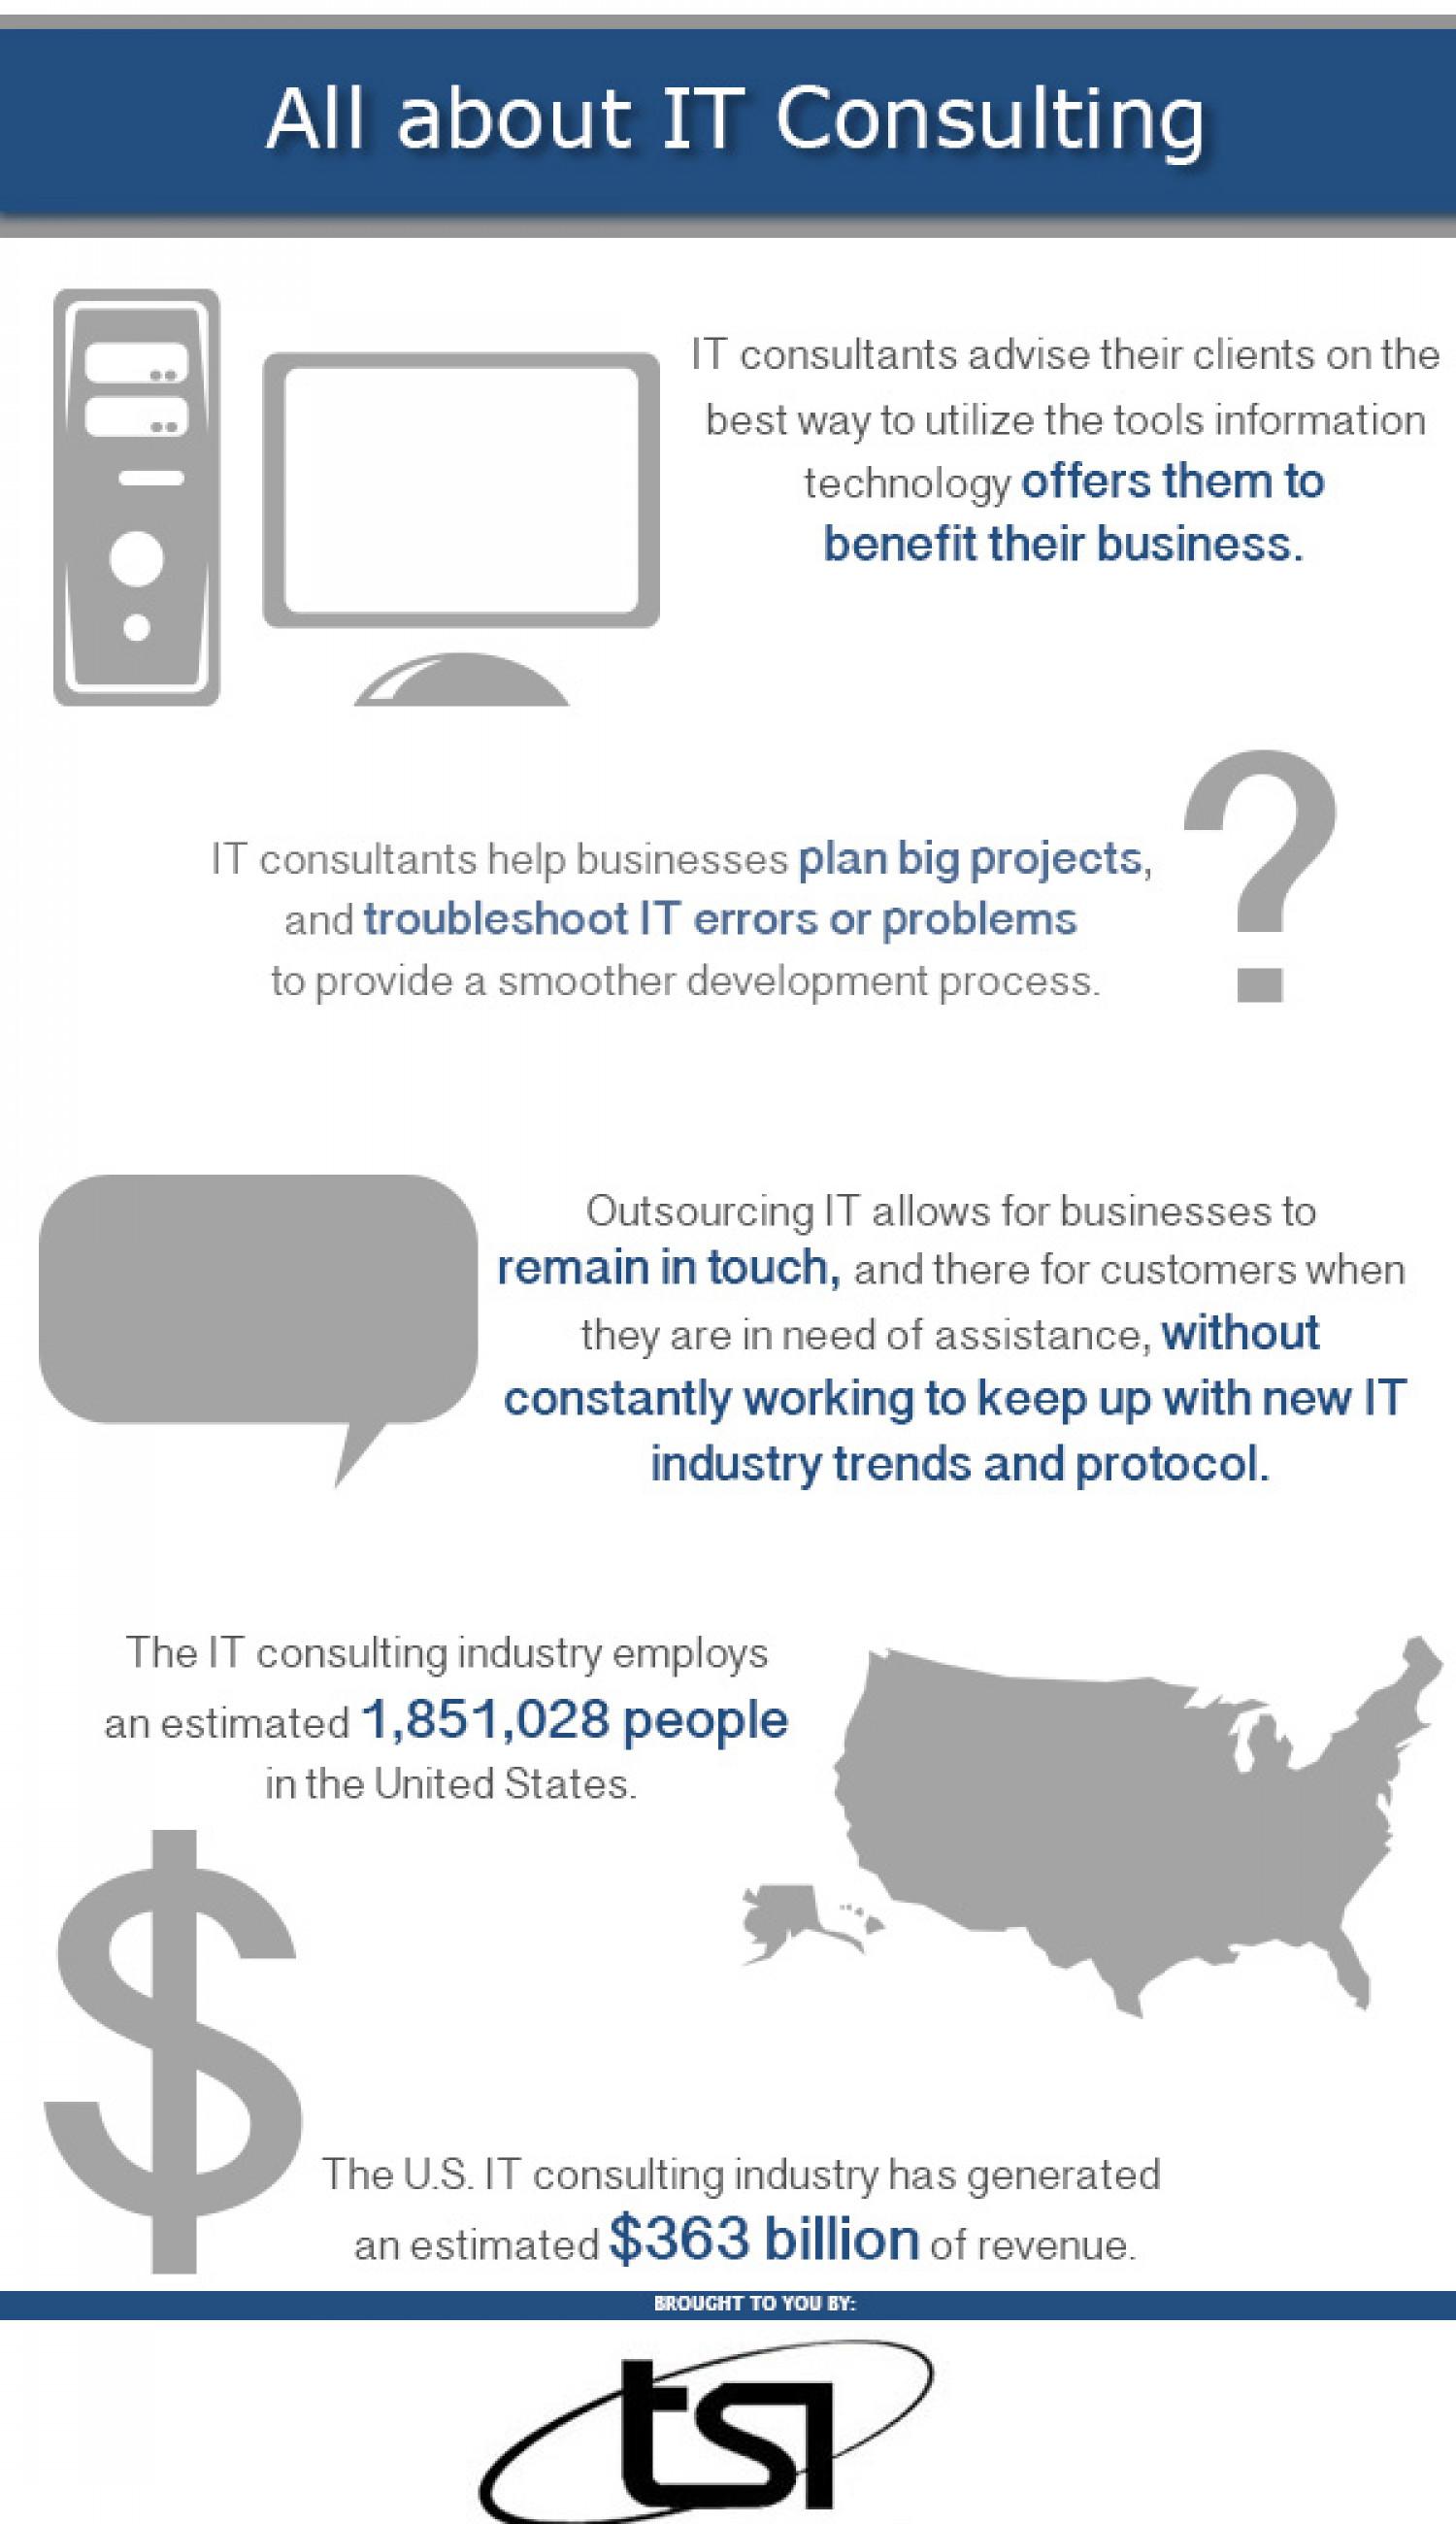 All About IT Consulting Infographic